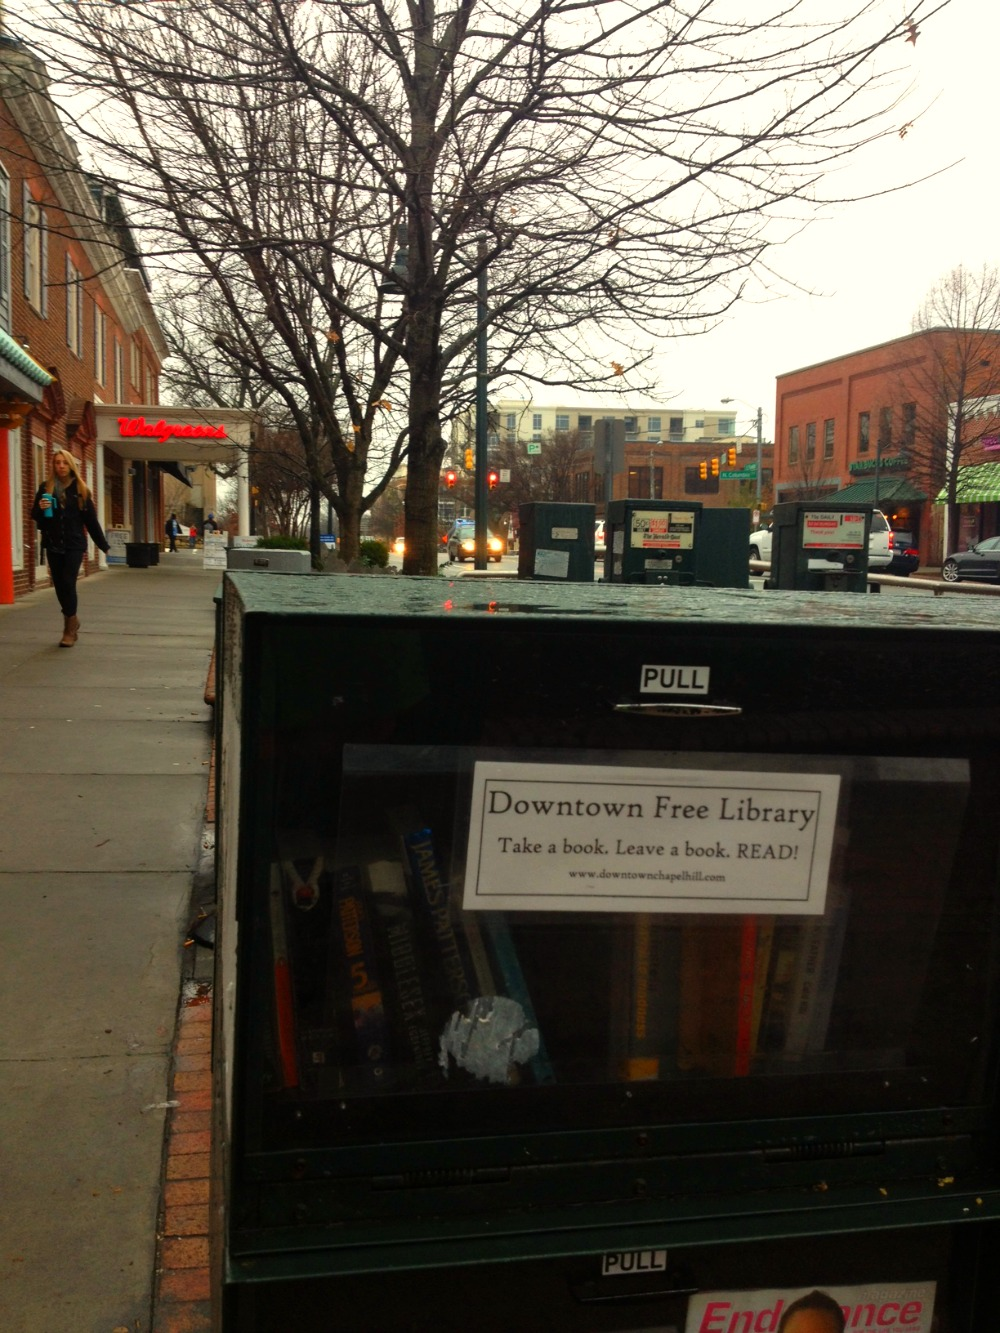 Downtown Free Library on East Franklin St.